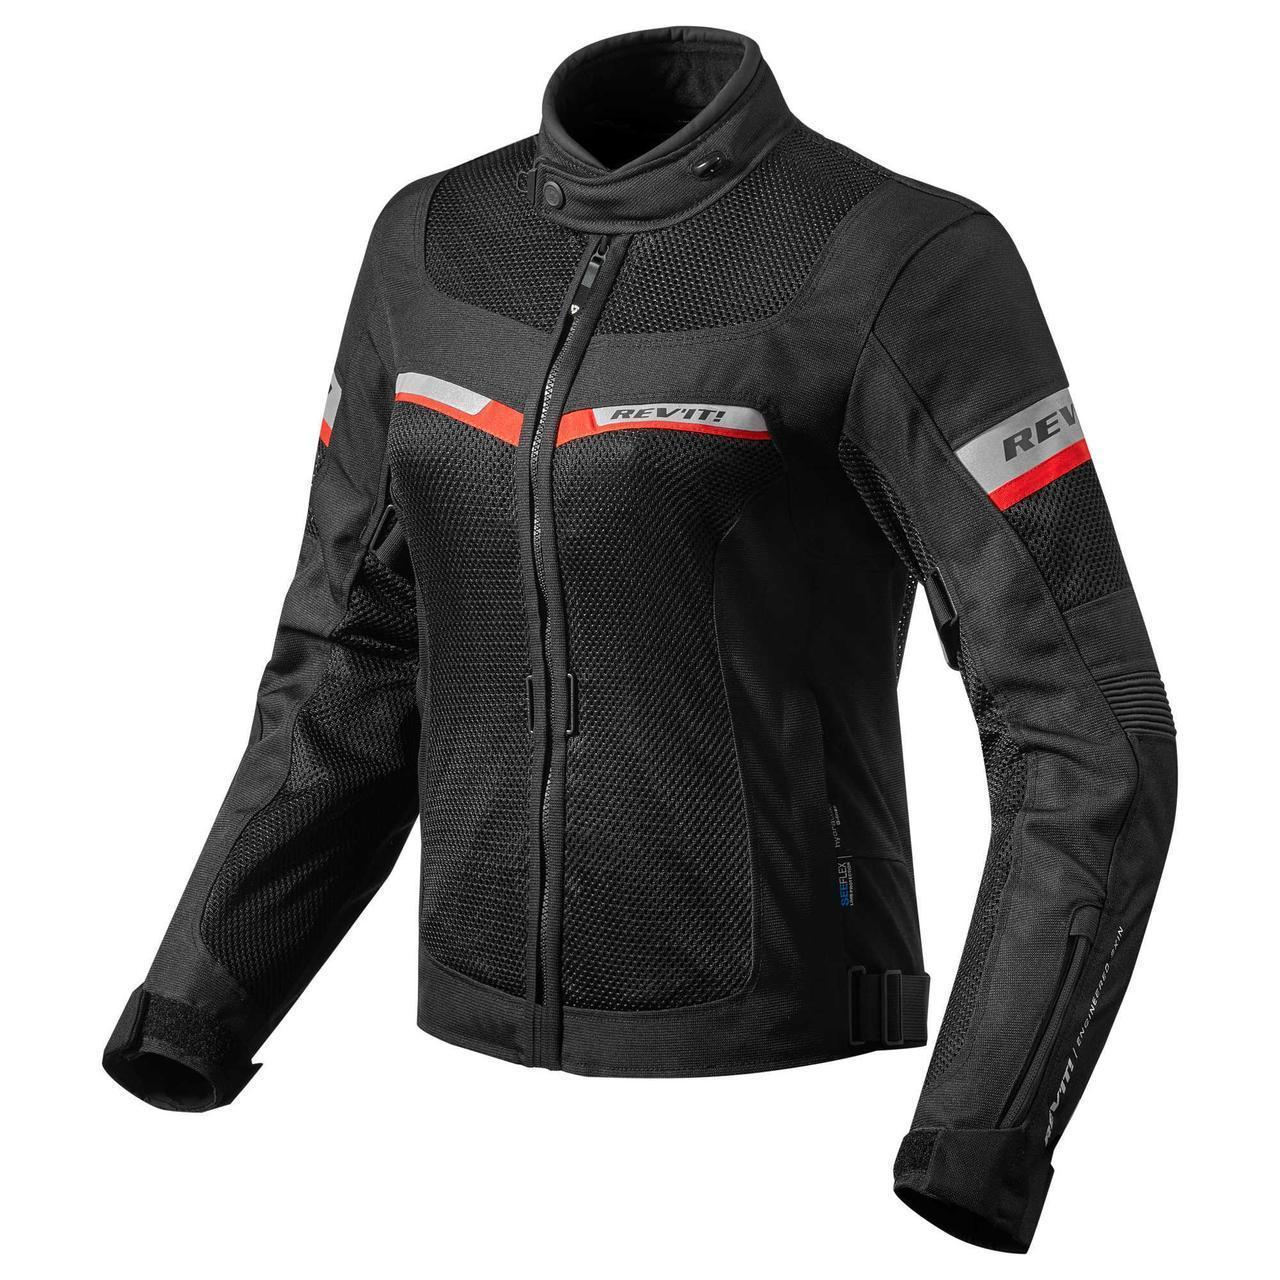 Мотокуртка Revit Tornado 2 LADIES р. 42 black